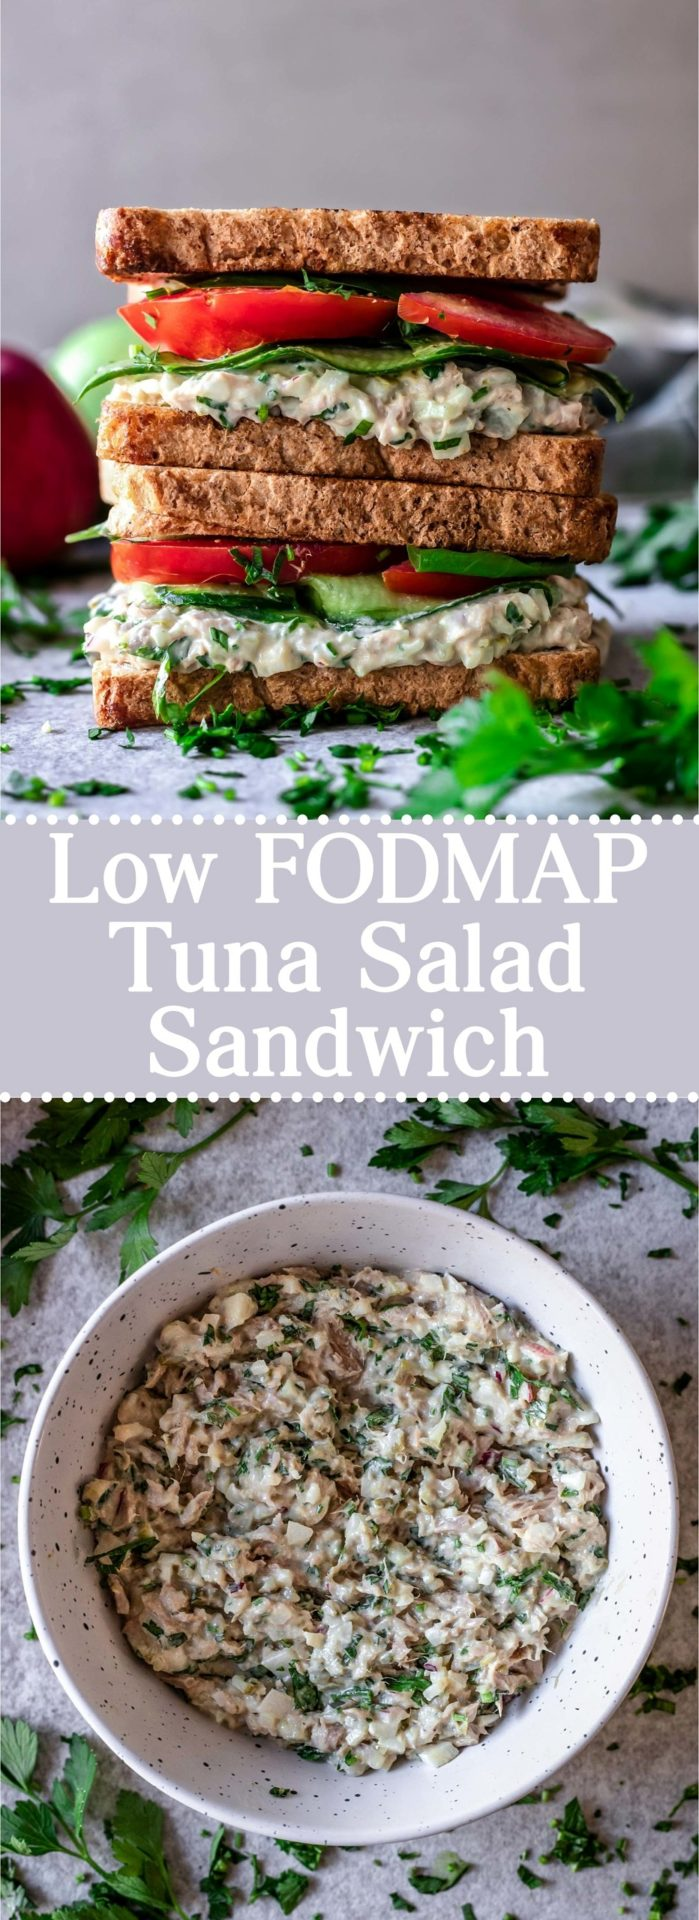 This Low FODMAP Tuna Salad Sandwich is flavorful, savory, filling, simple to make, customizable, seriously satisfying and so delicious!